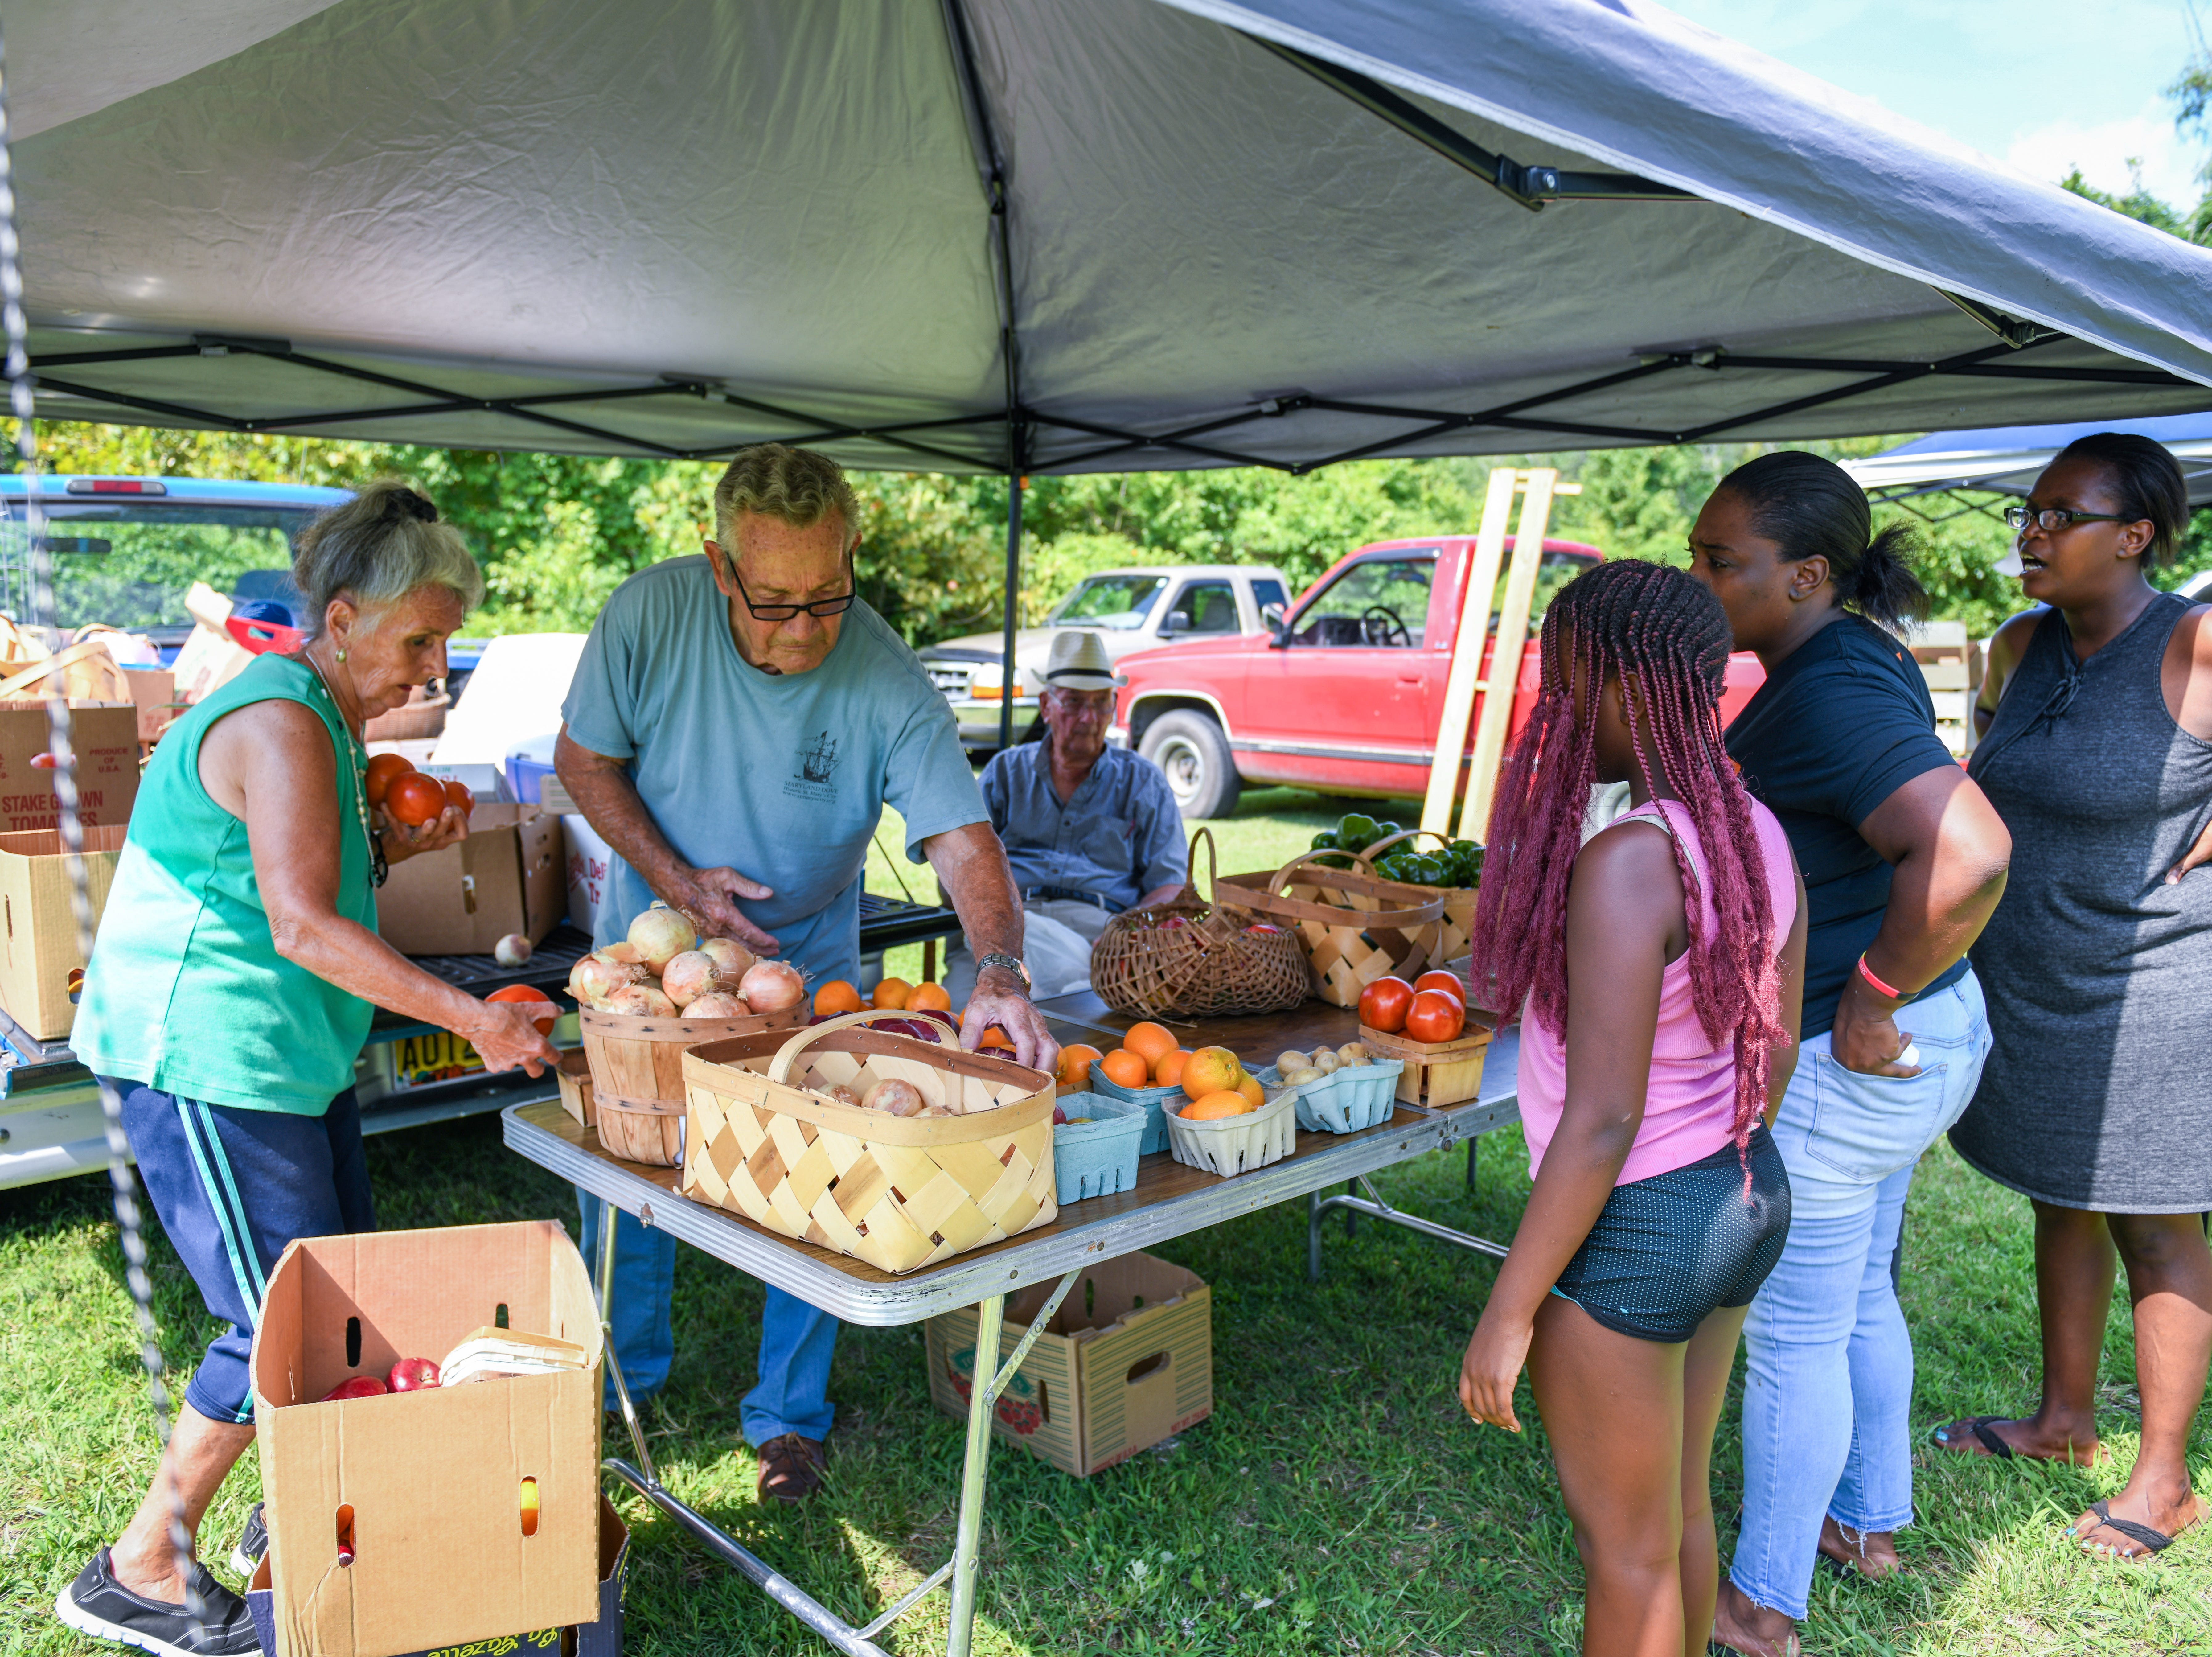 Katie Turner and David Mcinturff sell produce at the Princess Anne farmers market on August 9.